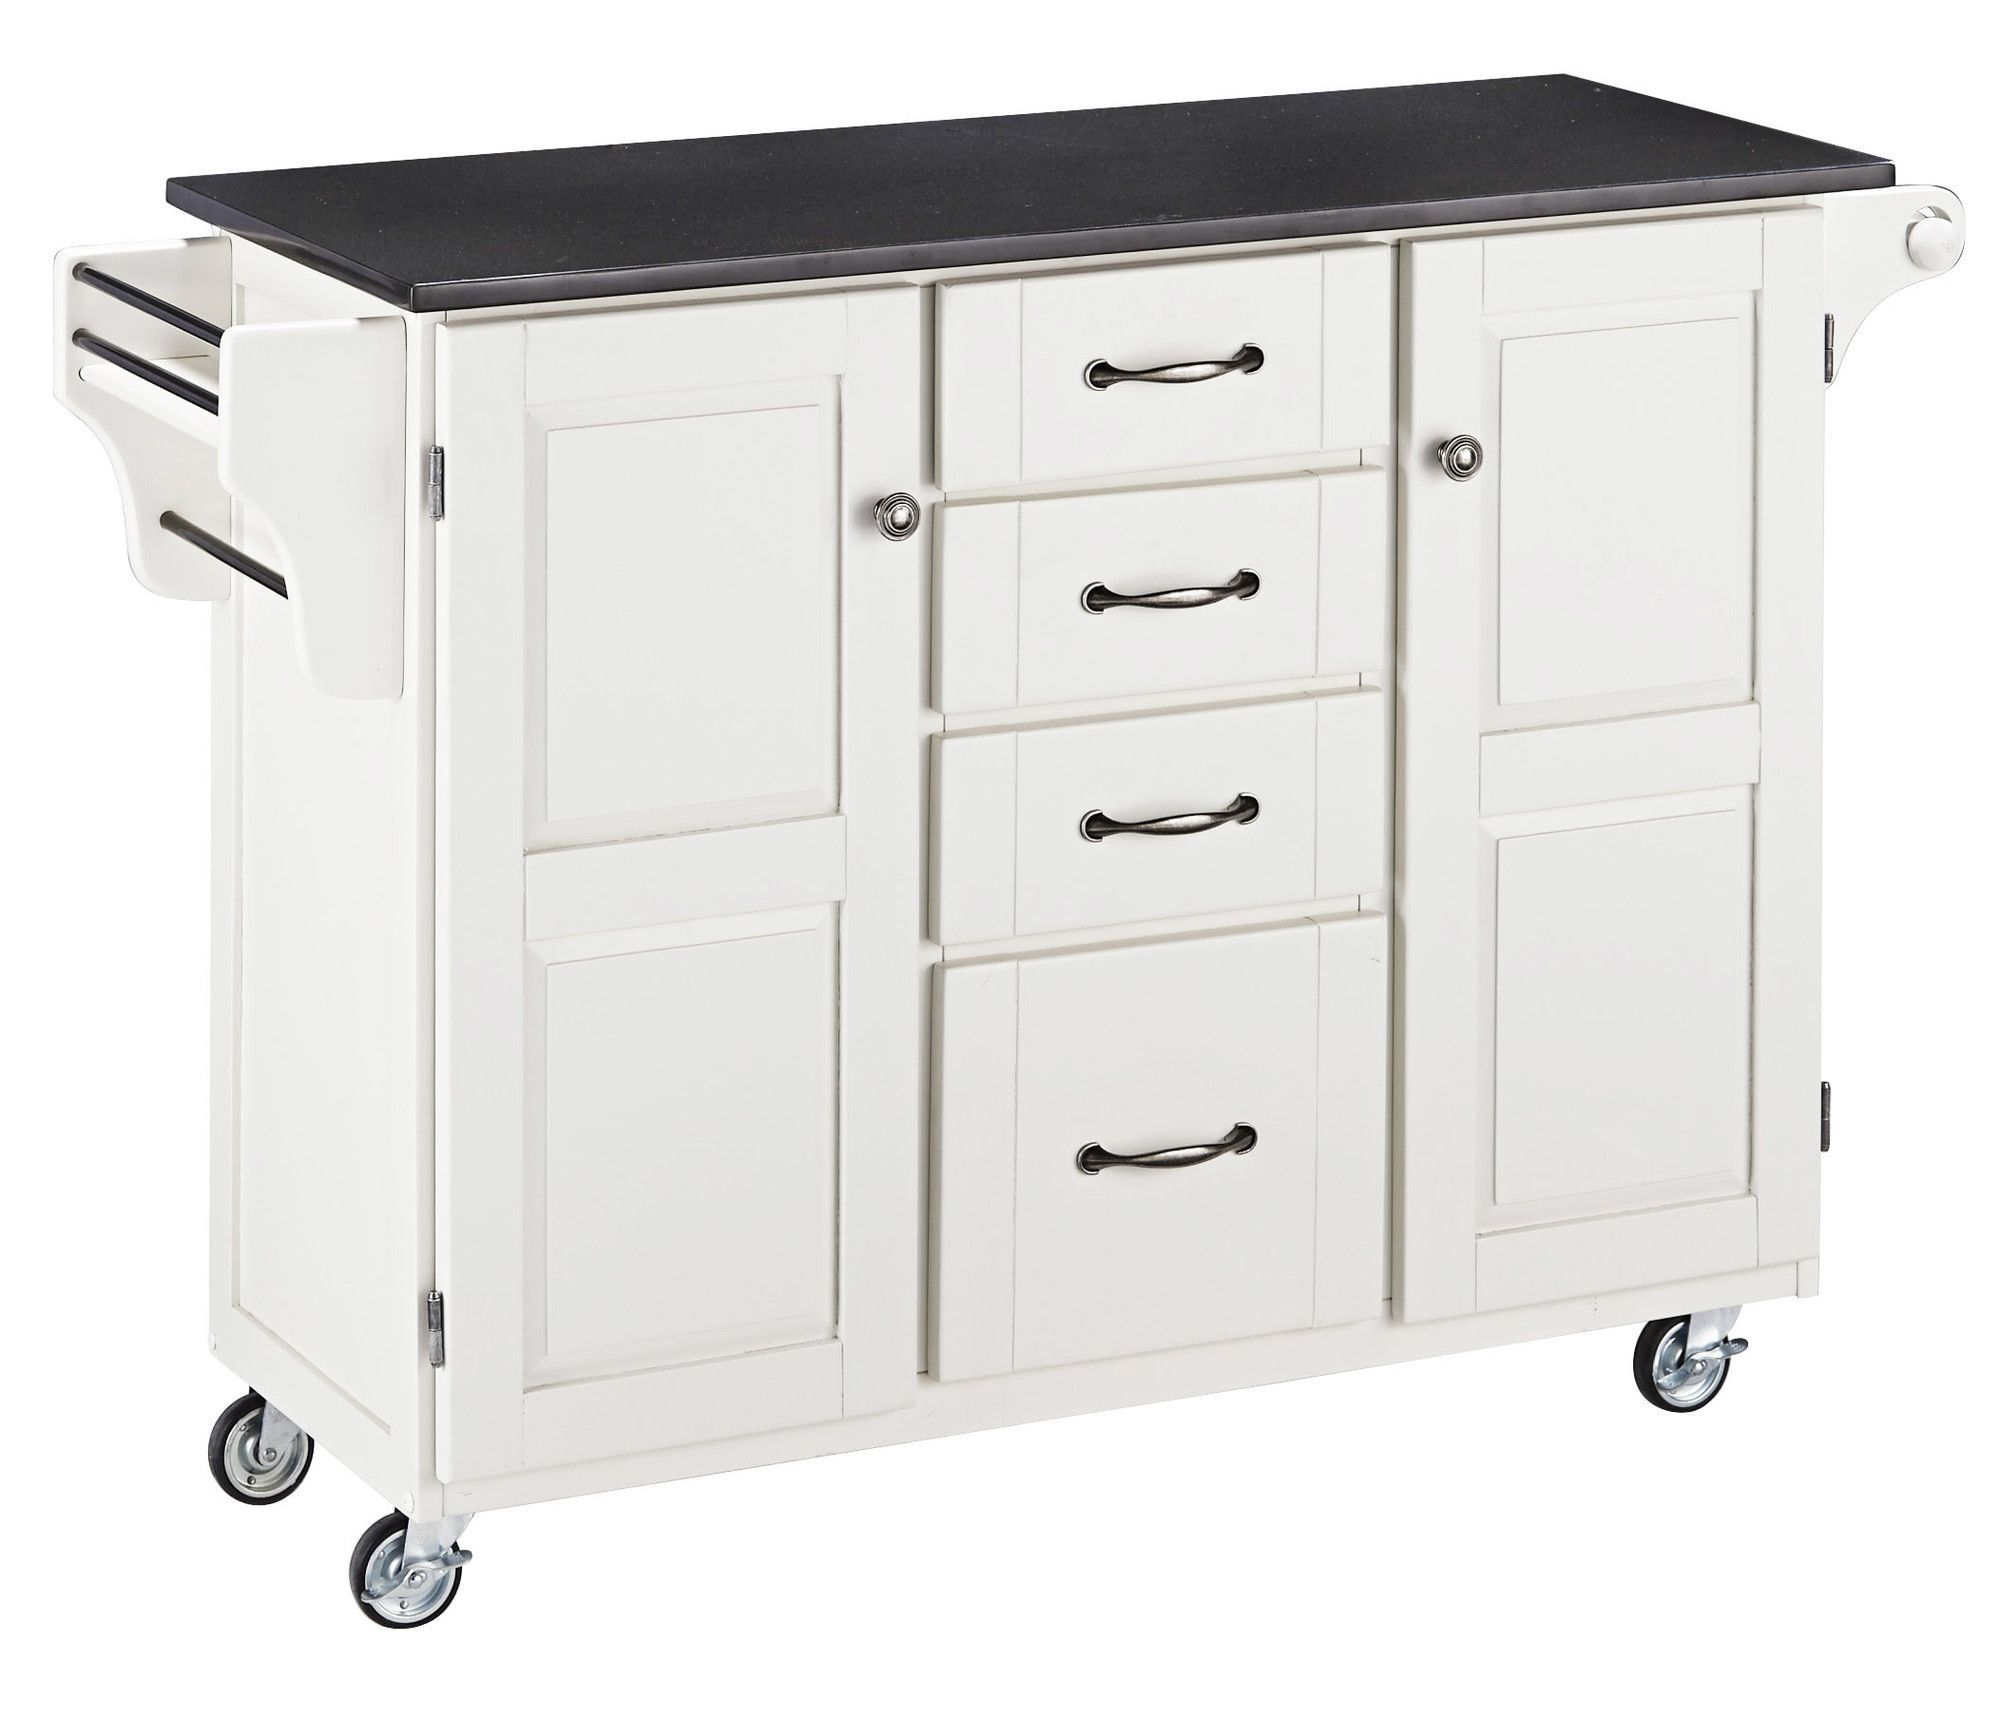 Alton Kitchen Island with Granite Top   Products   Pinterest